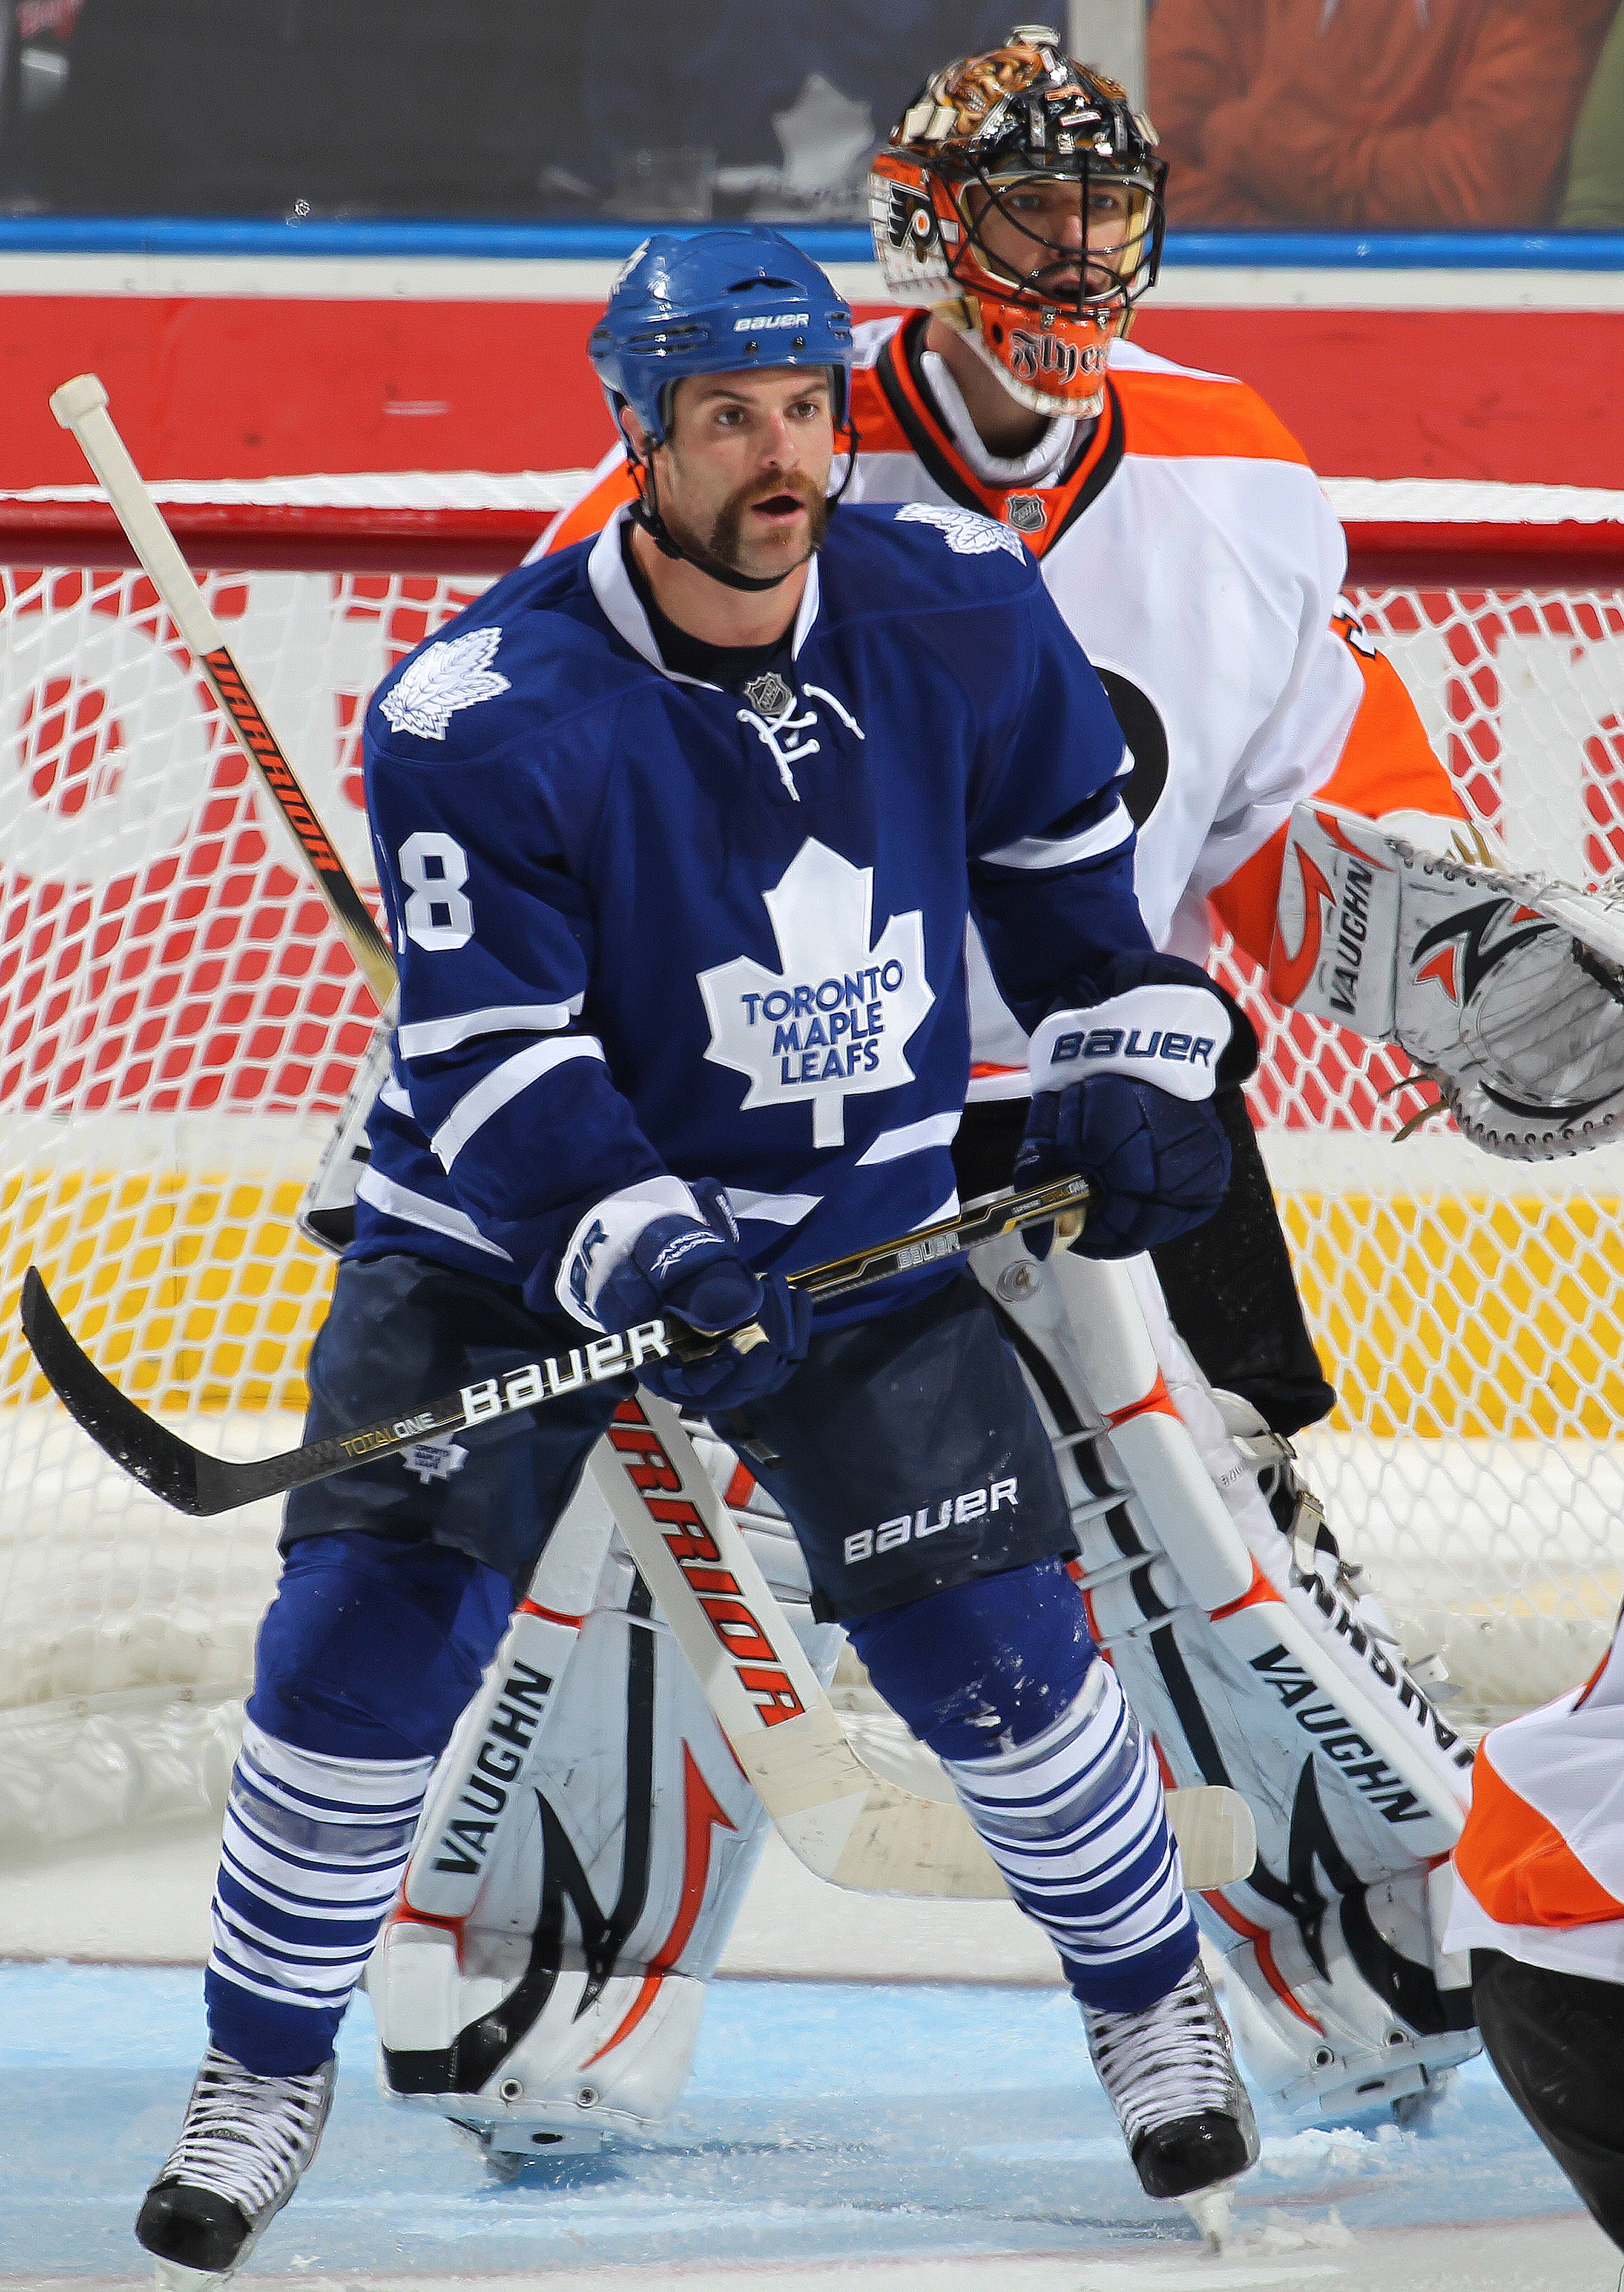 LONDON, CANADA - SEPTEMBER 23:  Mike Brown #18 of the Toronto Maple Leafs settles in the crease in front of goalie Brian Boucher #33 of the Philadelphia Flyers in a preseason game on September 23,2010 at the John Labatt Centre in London, Ontario. The Leaf